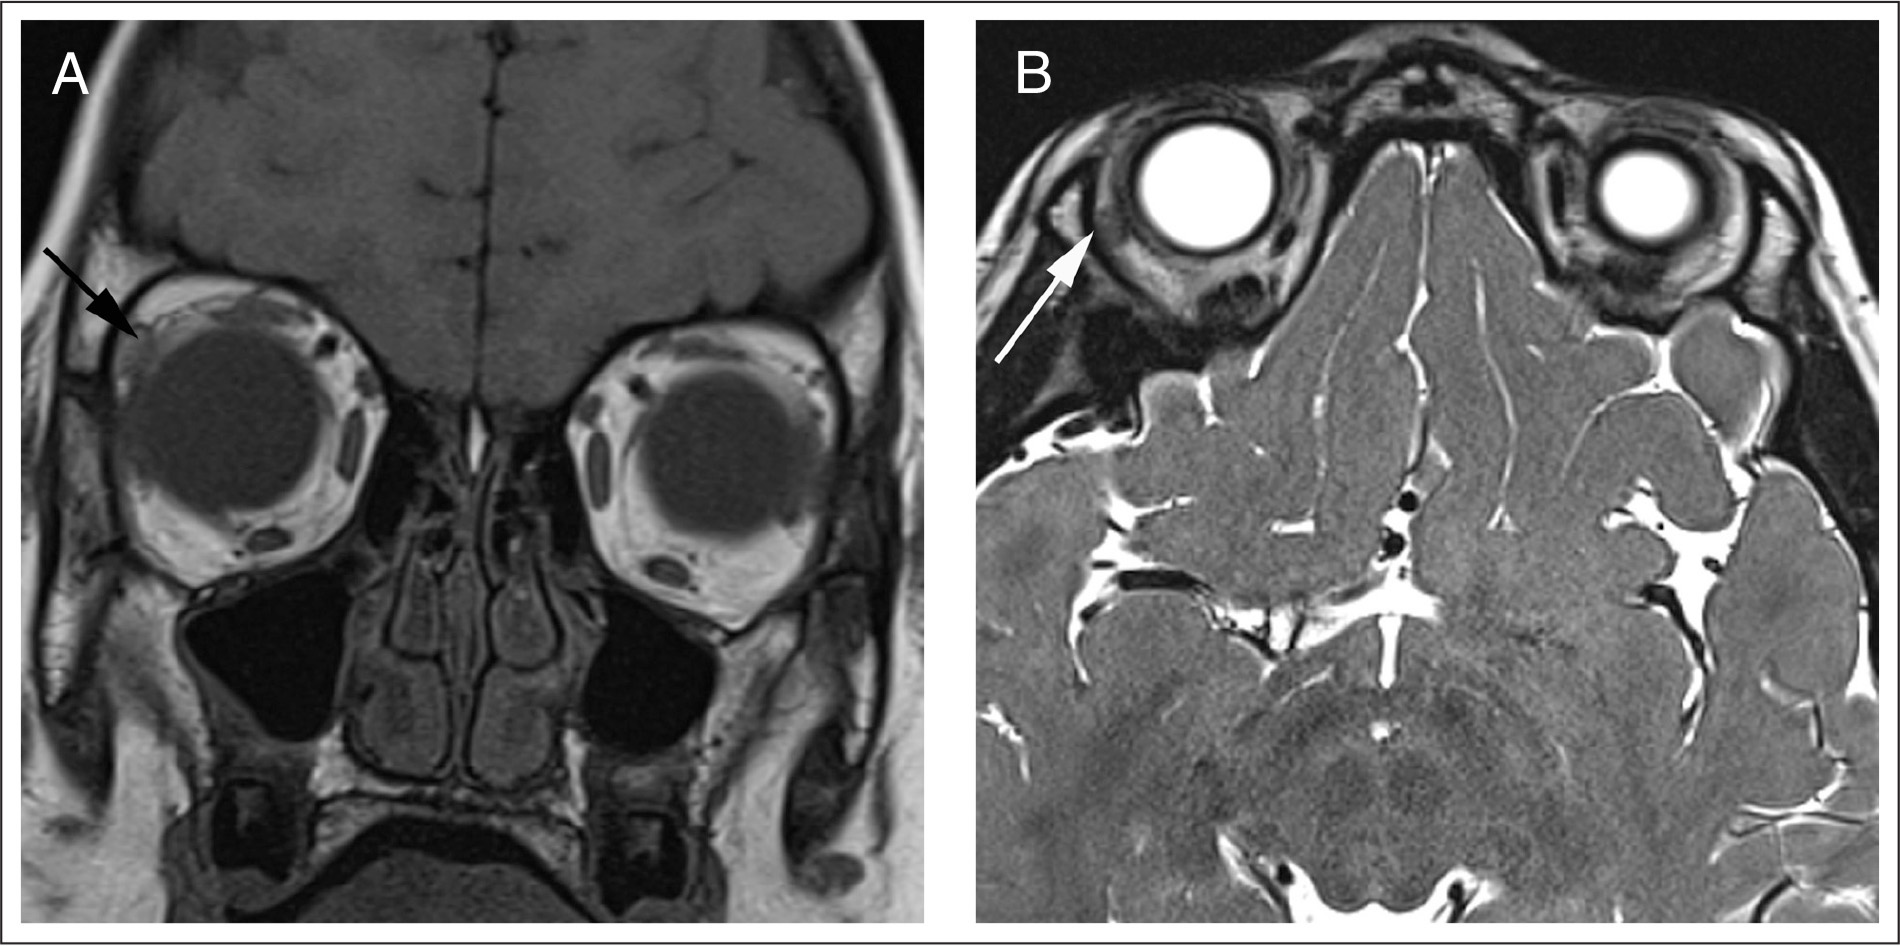 (A) A high-resolution coronal T1-weighted 3T magnetic resonance image (MRI) of the orbits reveals complete absence of the left lacrimal gland and a severe hypoplasia of the right lacrimal gland (black arrow). (B) Axial three-dimensional sampling perfection with application optimized contrasts using different flip angle evolutions MRI of the superior orbits corroborates left lacrimal gland aplasia and severe hypoplasia of the right lacrimal gland (white arrow).